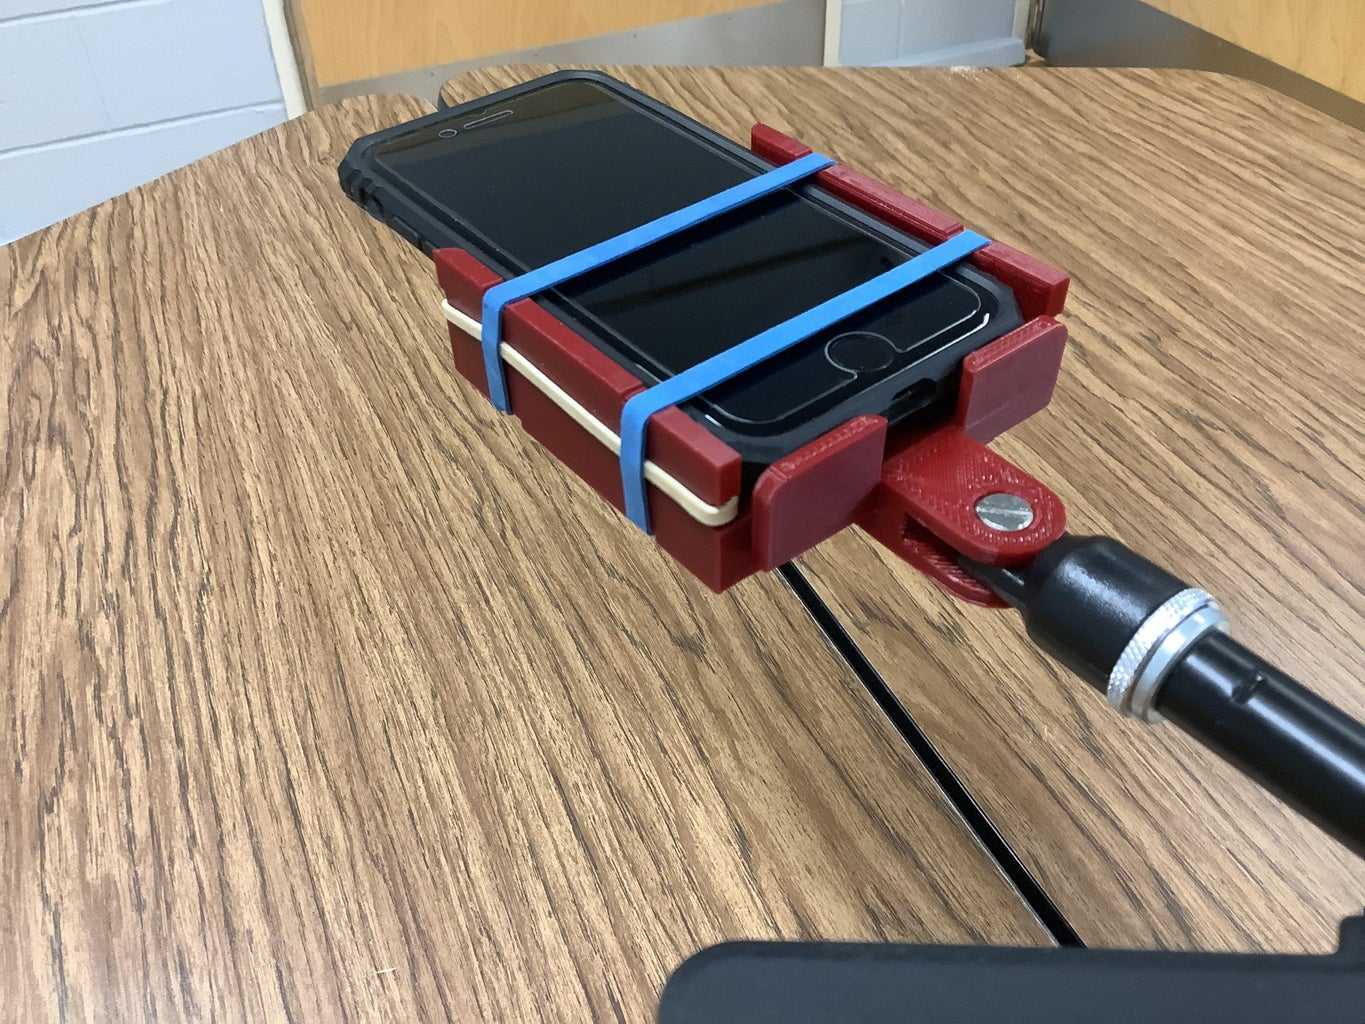 Connect the Microphone Clip to the Cellphone Mount and Attach to the Stand